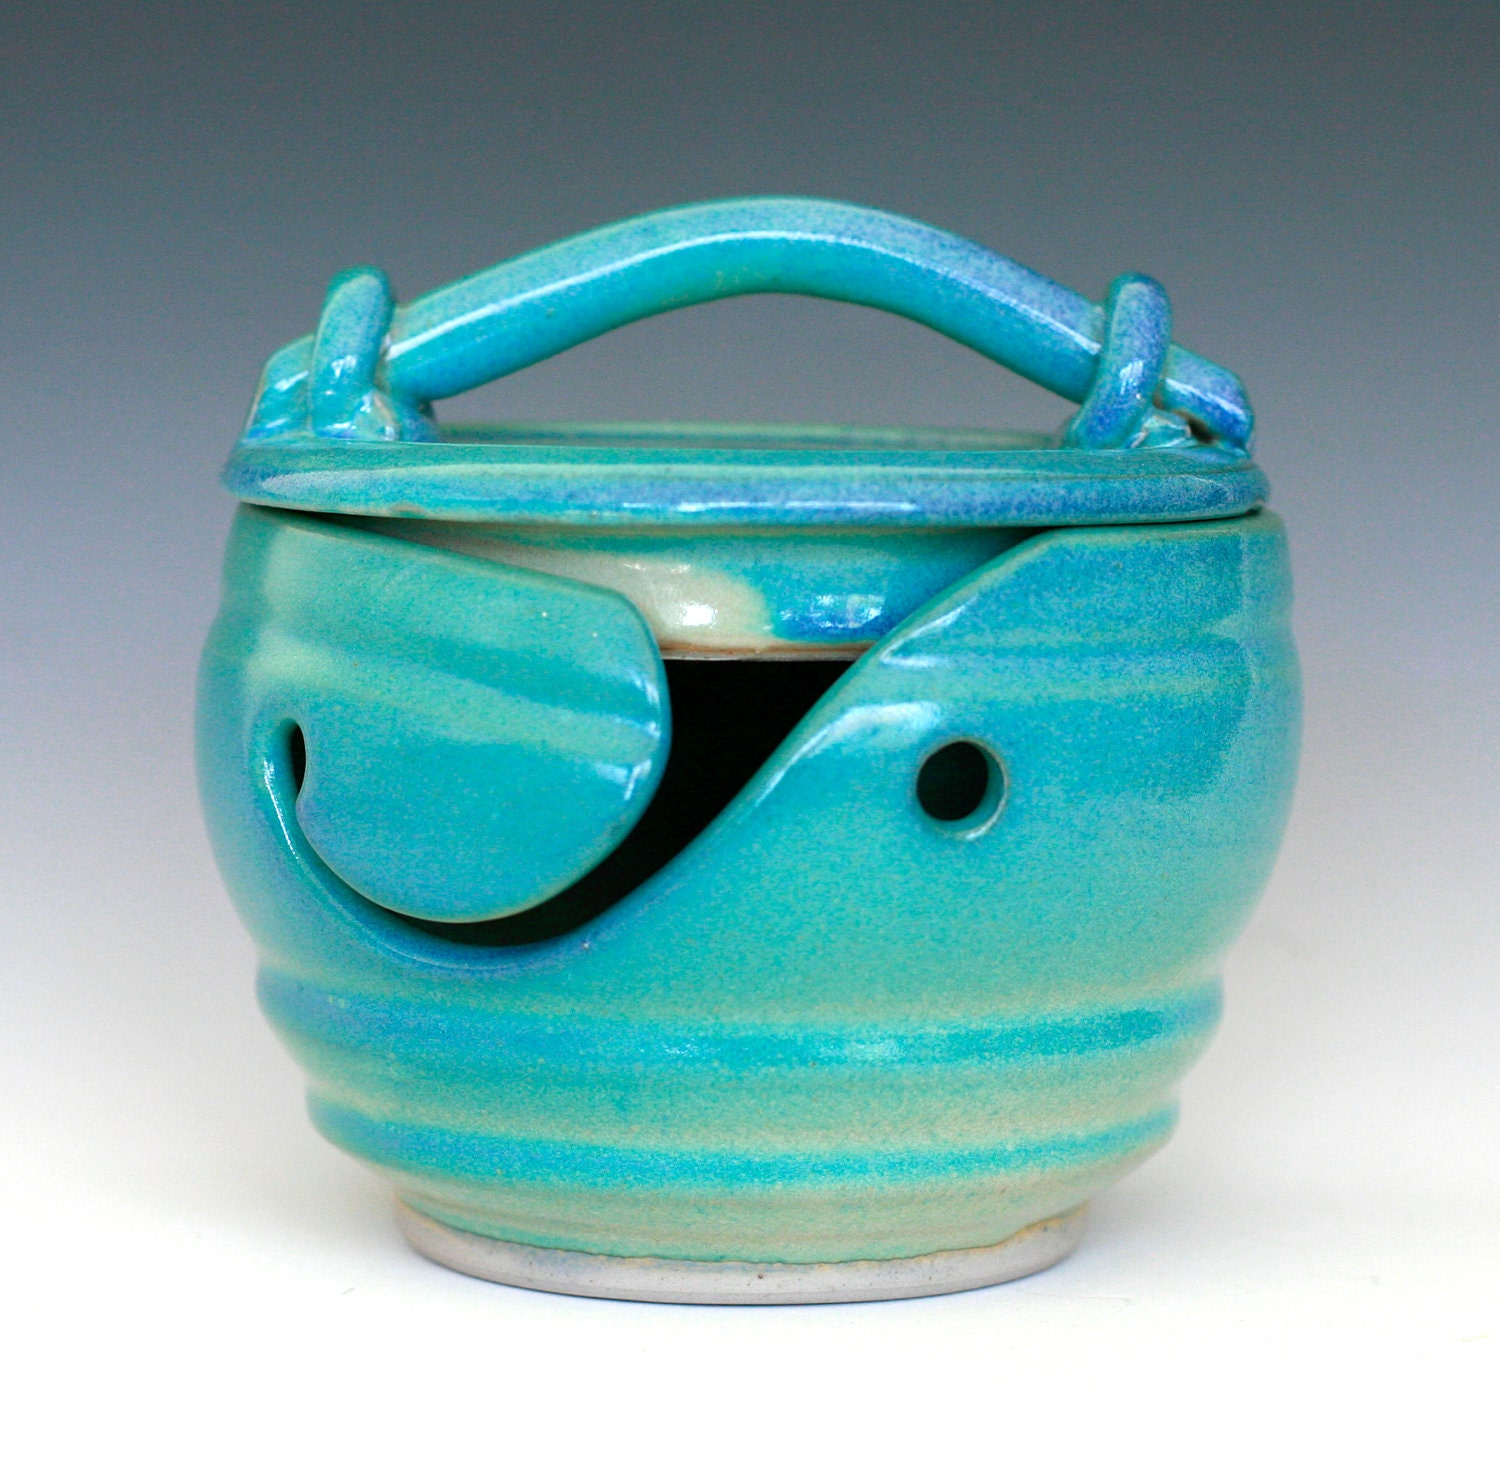 Knitting Bowl Canada : Kitty proof yarn bowl handmade ceramic in by